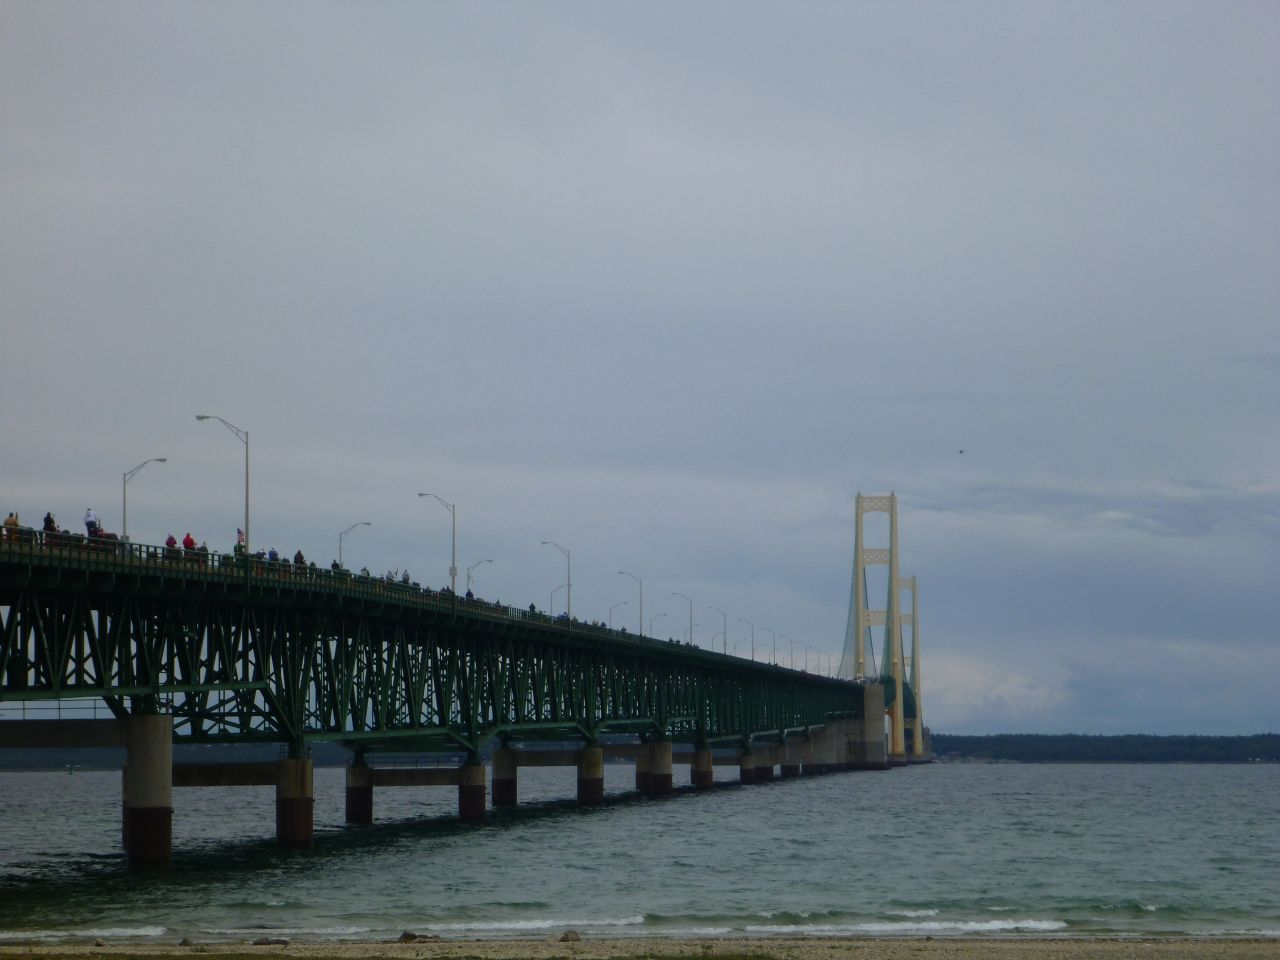 Tractors Crossing The Mackinac Bridge.  The Quadcopter Is In The Background In The Top Right Corner.